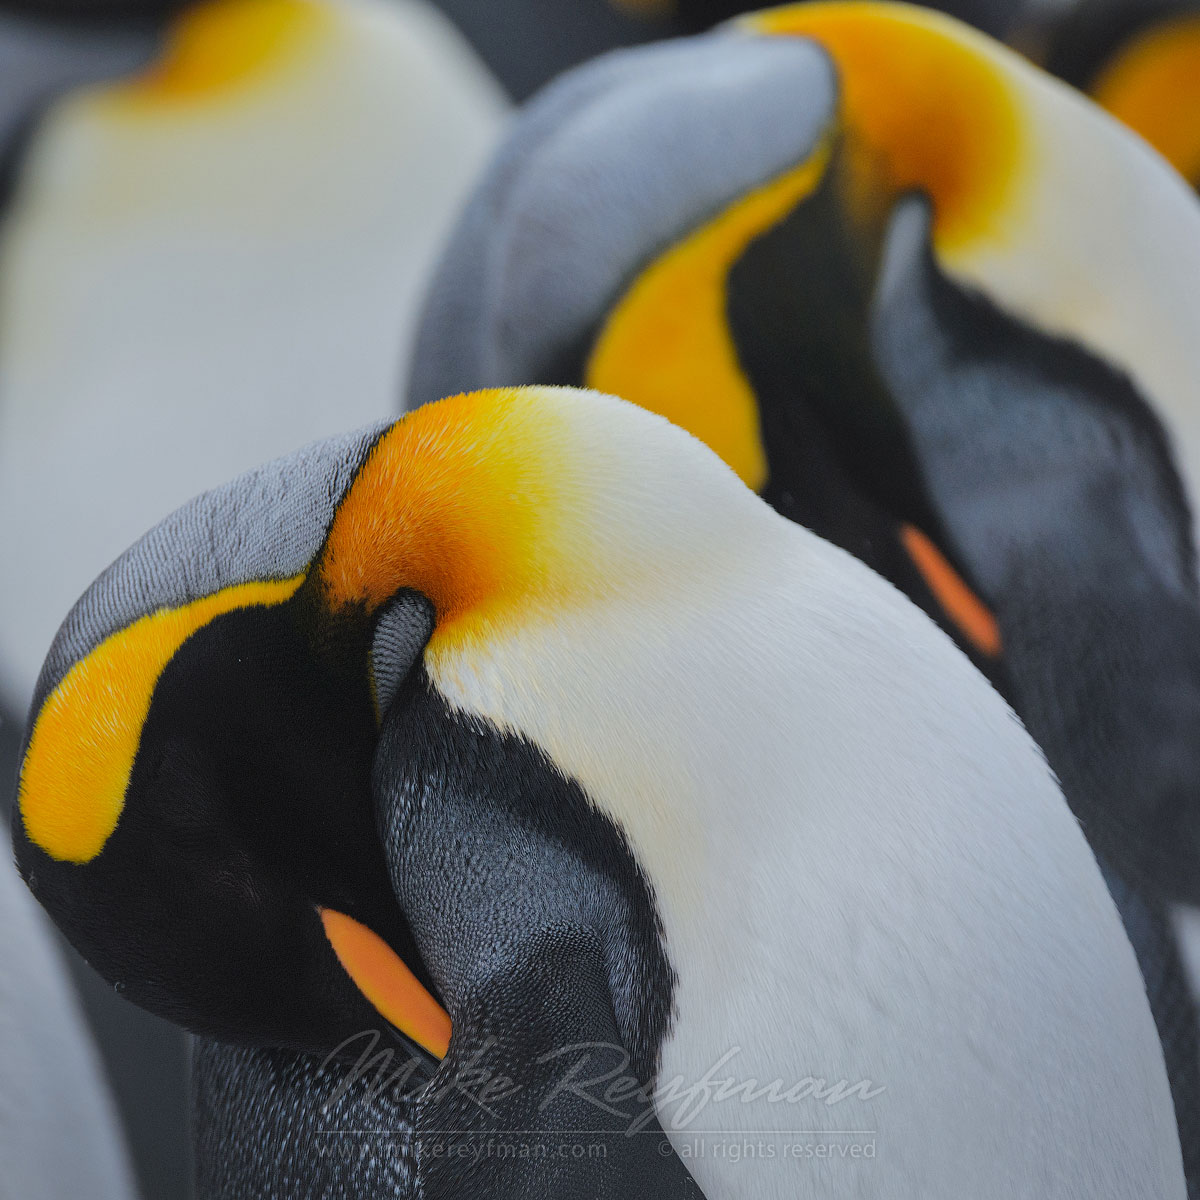 Penguino-Graphics. King Penguins (Aptenodytes patagonicus), Salisbury Plain, South Georgia, Sub-Antarctic - King-Penguins-South-Georgia-Sub-Antarctic - Mike Reyfman Photography